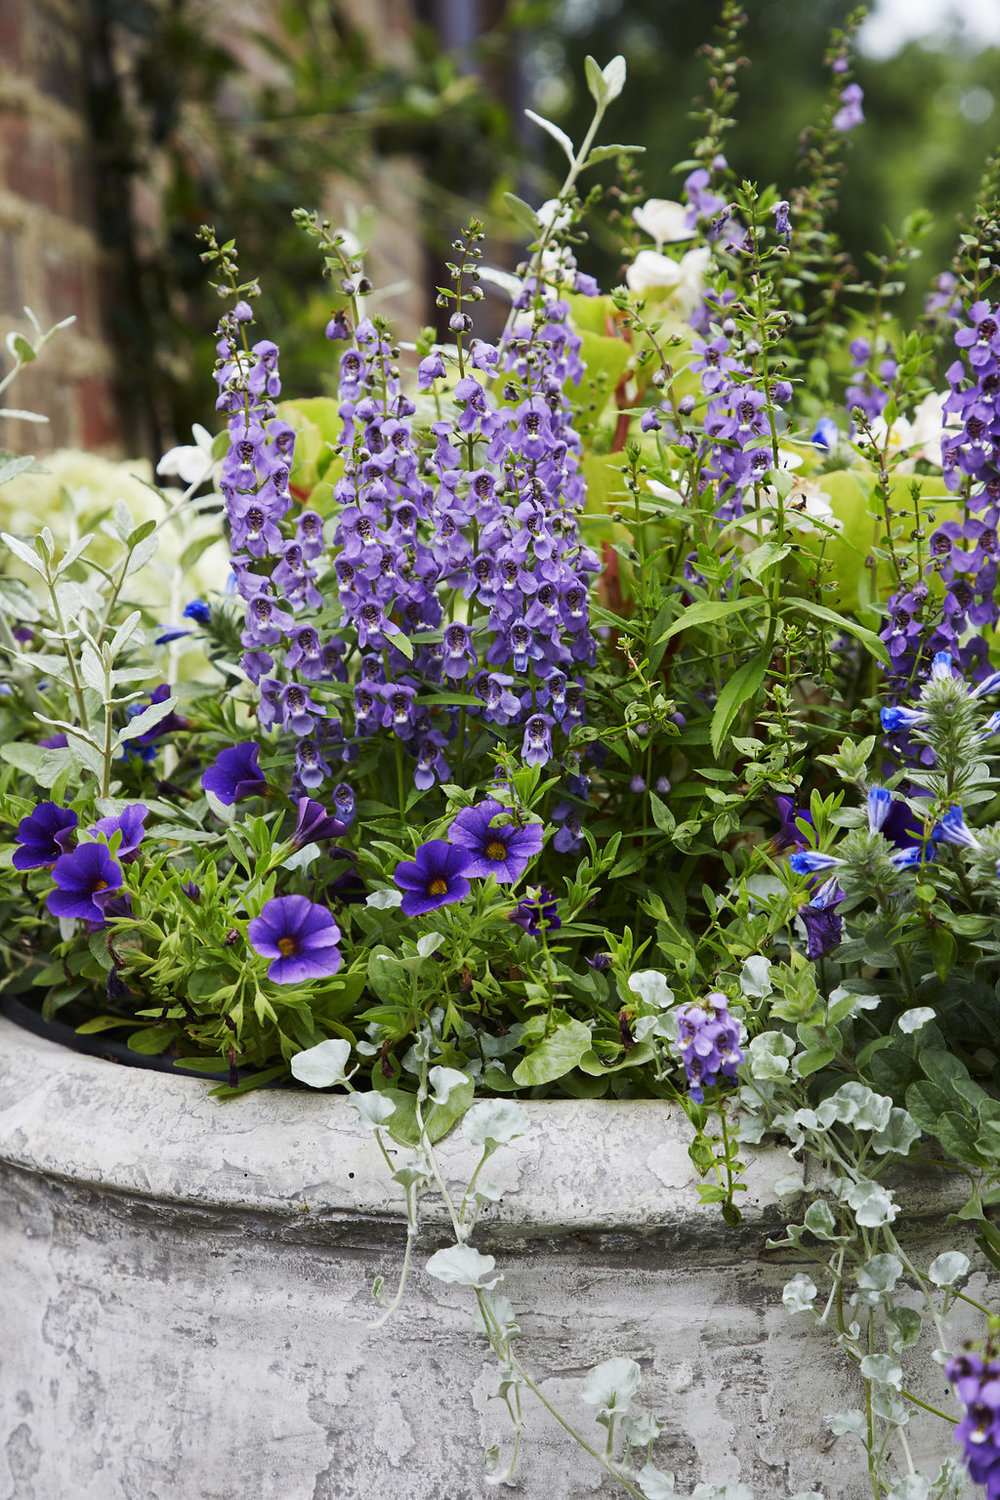 Close up of the lavender and violets inside of the custom built planters.